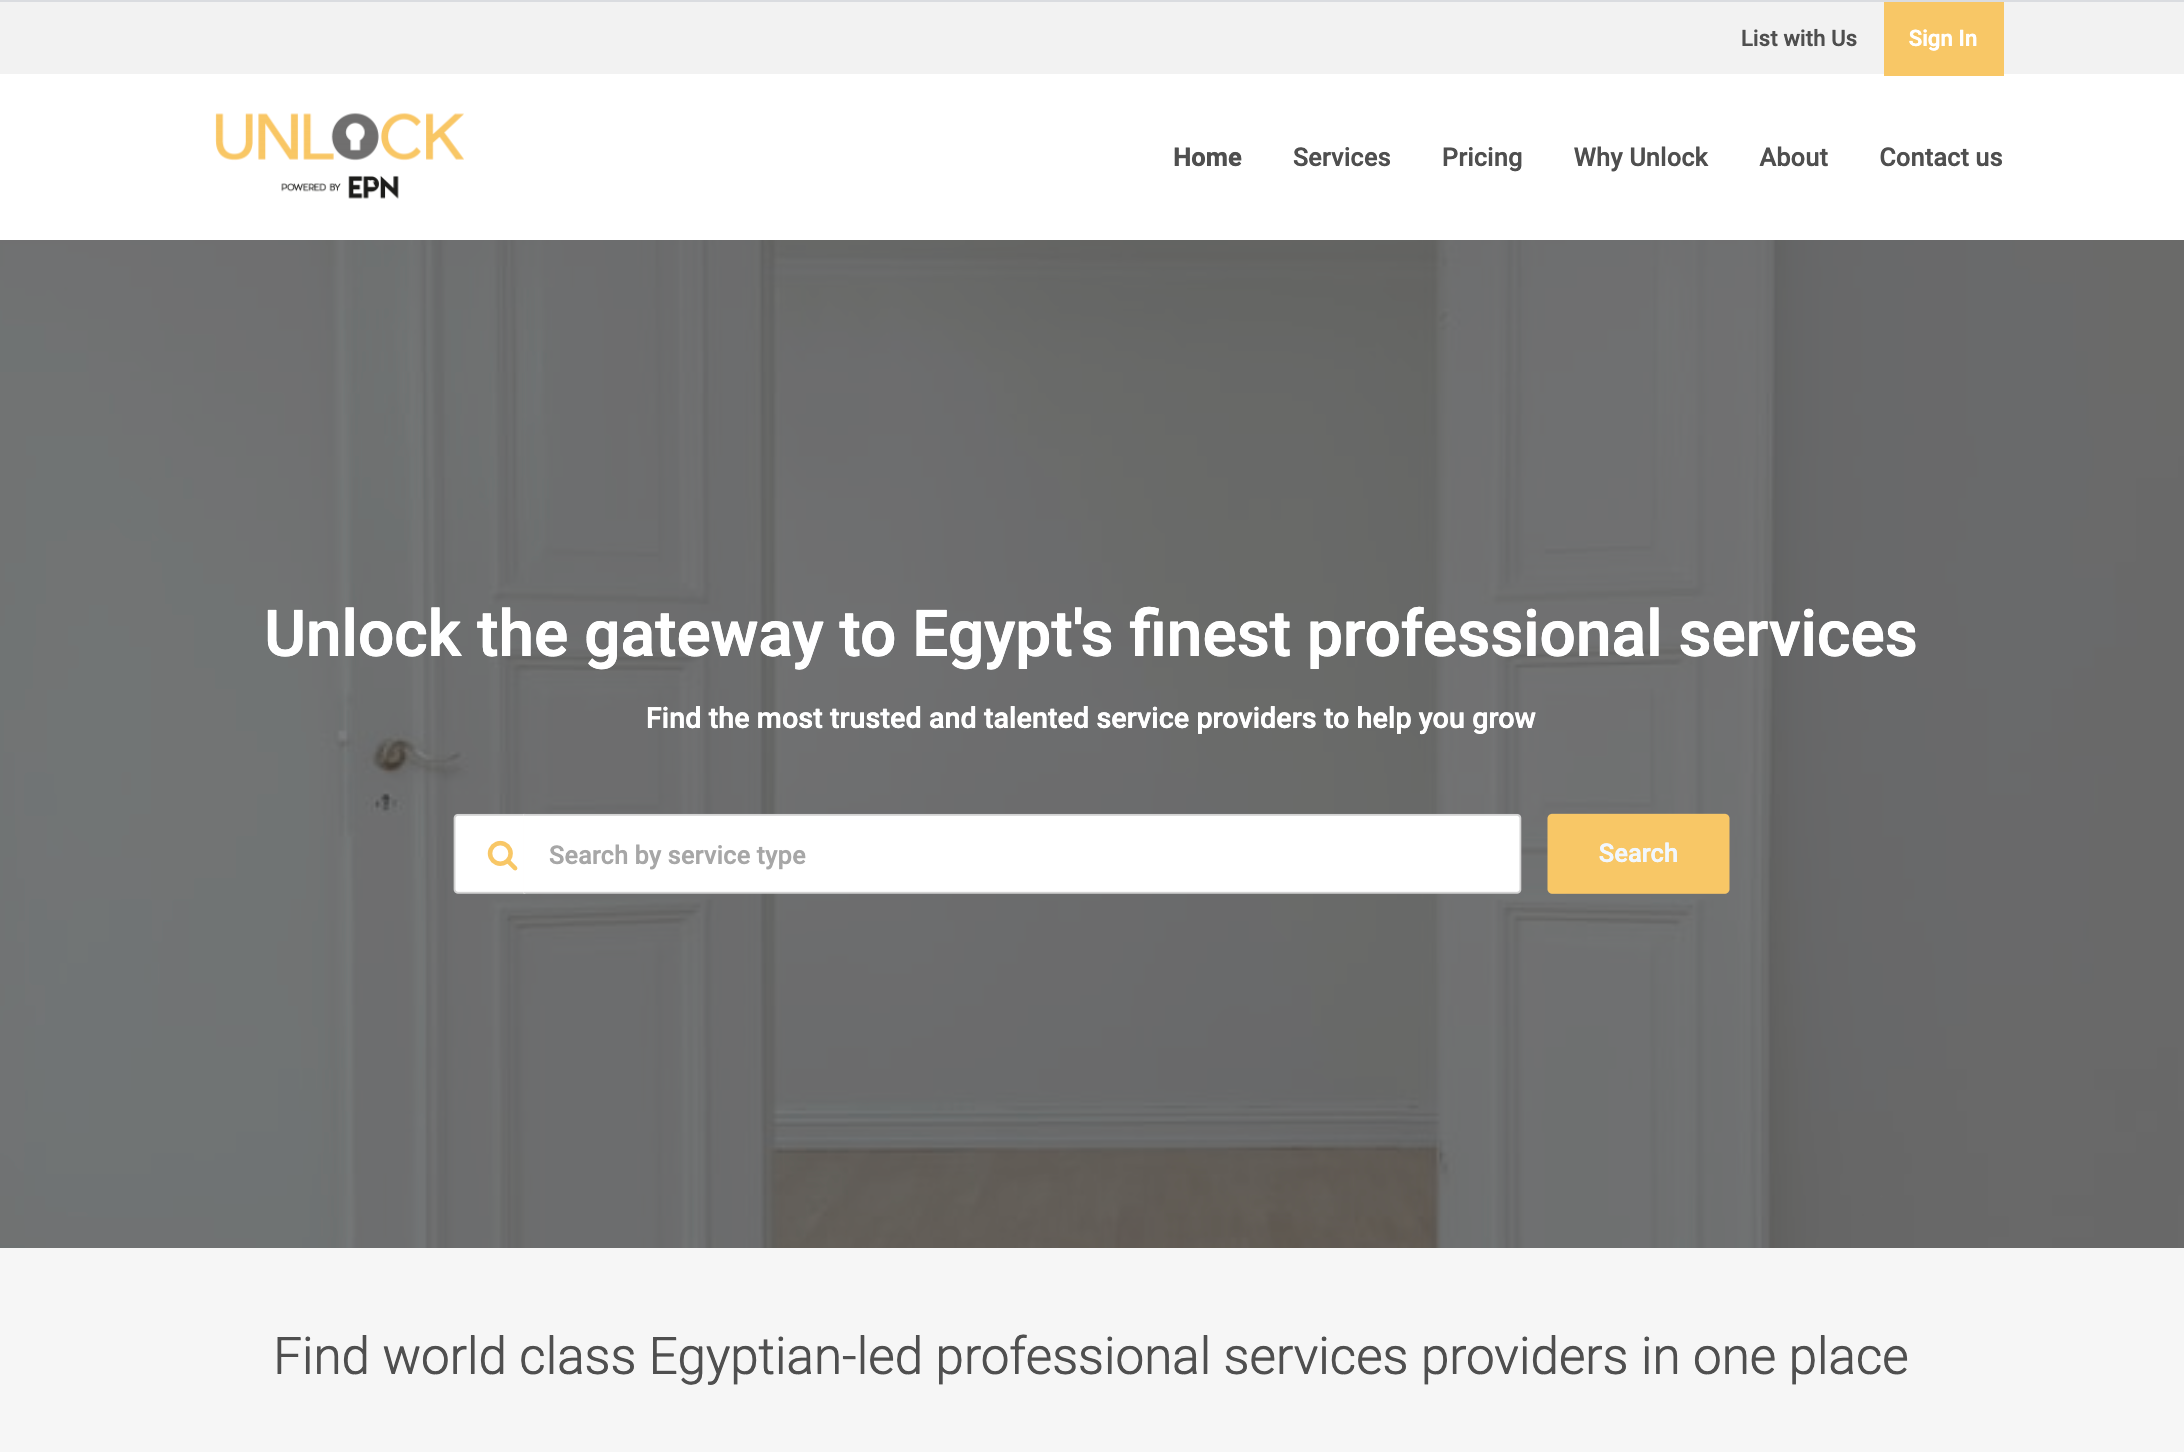 EPN launches UNLOCK, home to Egypt's finest service providers